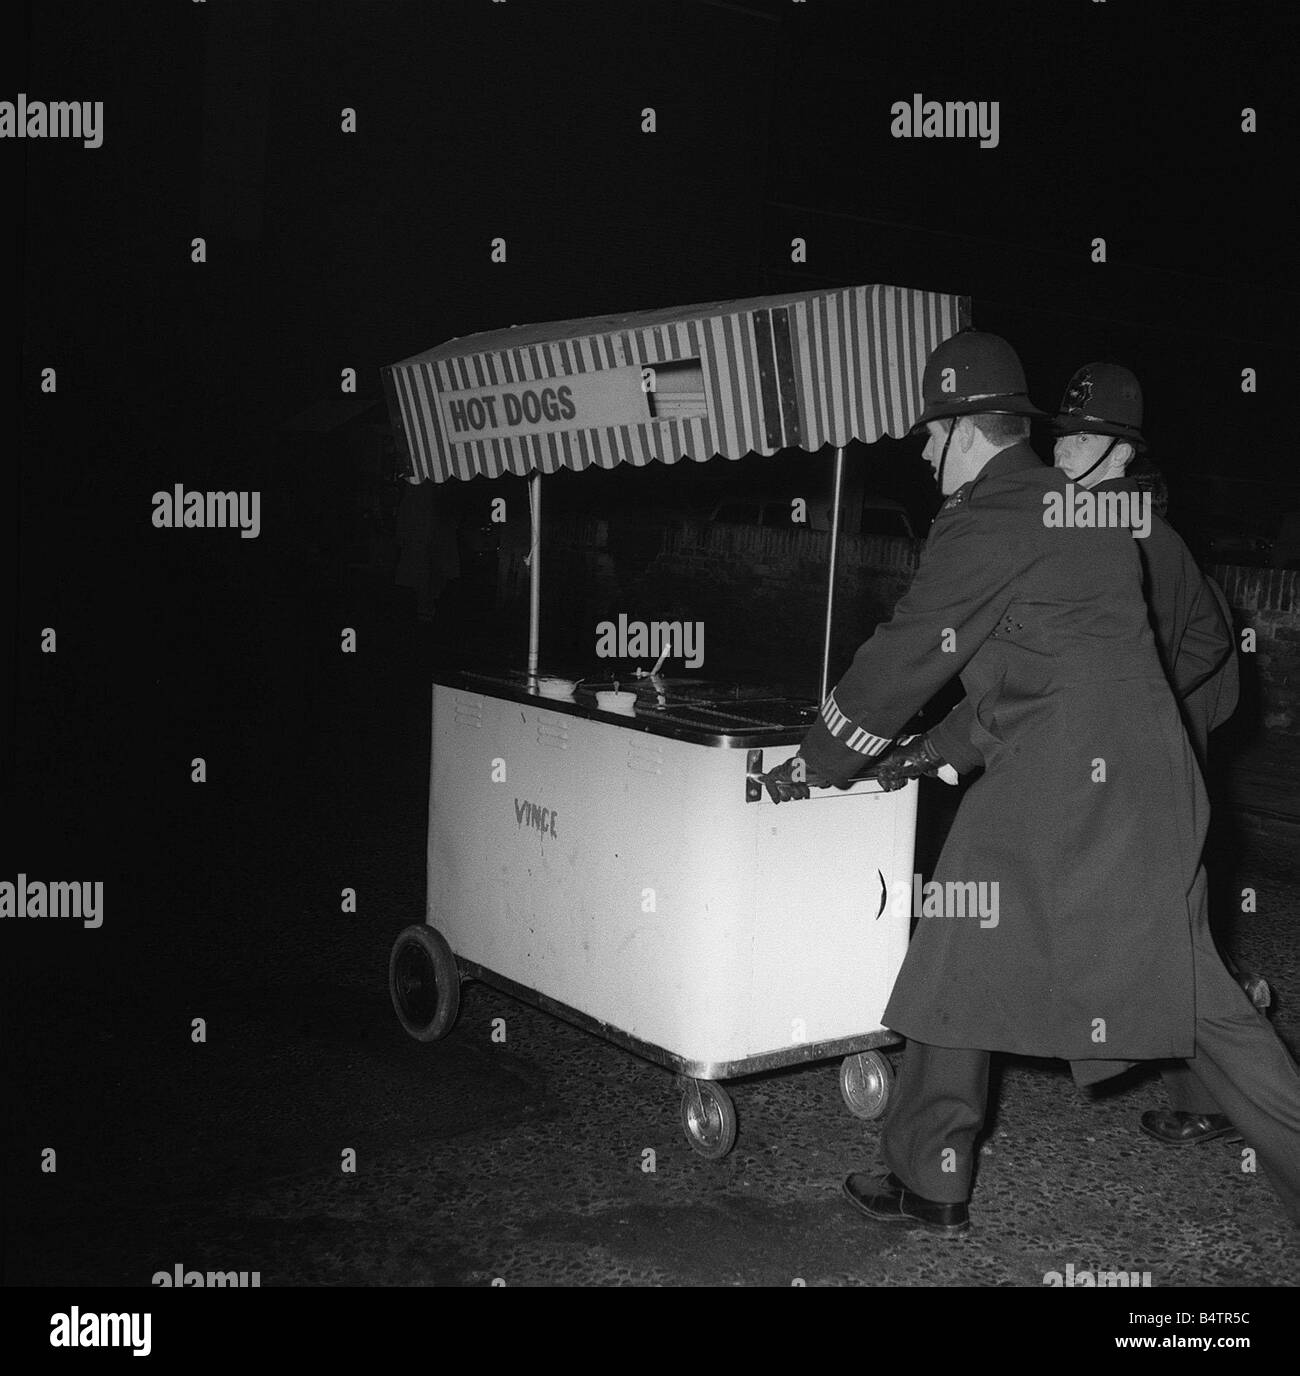 Policemen with hot dog stand Ello ello ello What have we here then Not as it may appear a couple of rogue police Stock Photo